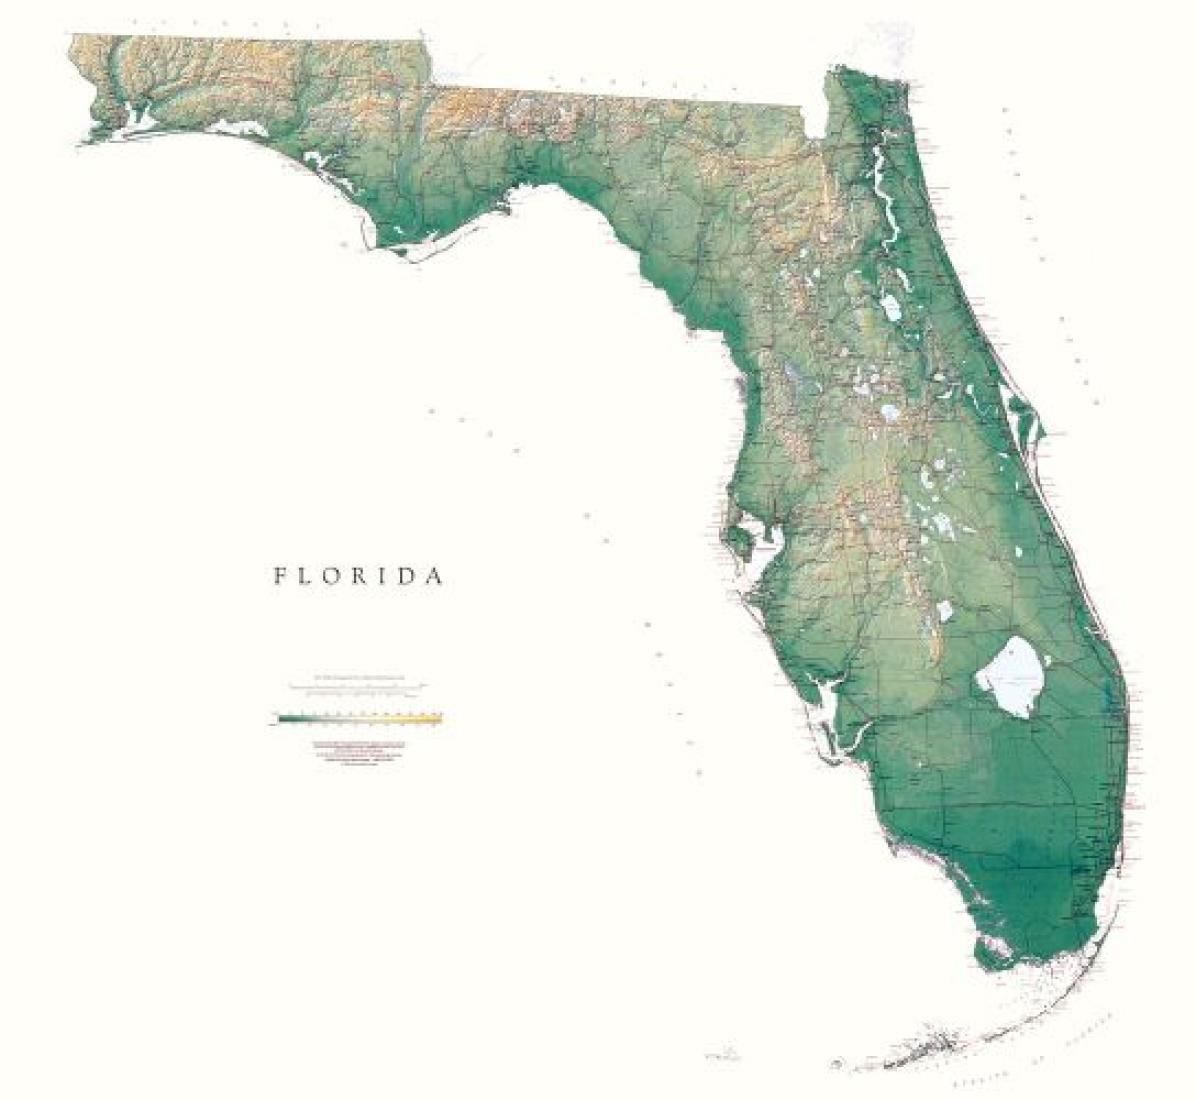 Florida Physical Laminated Wall Map By Raven Maps Products - Where can i buy a wall map